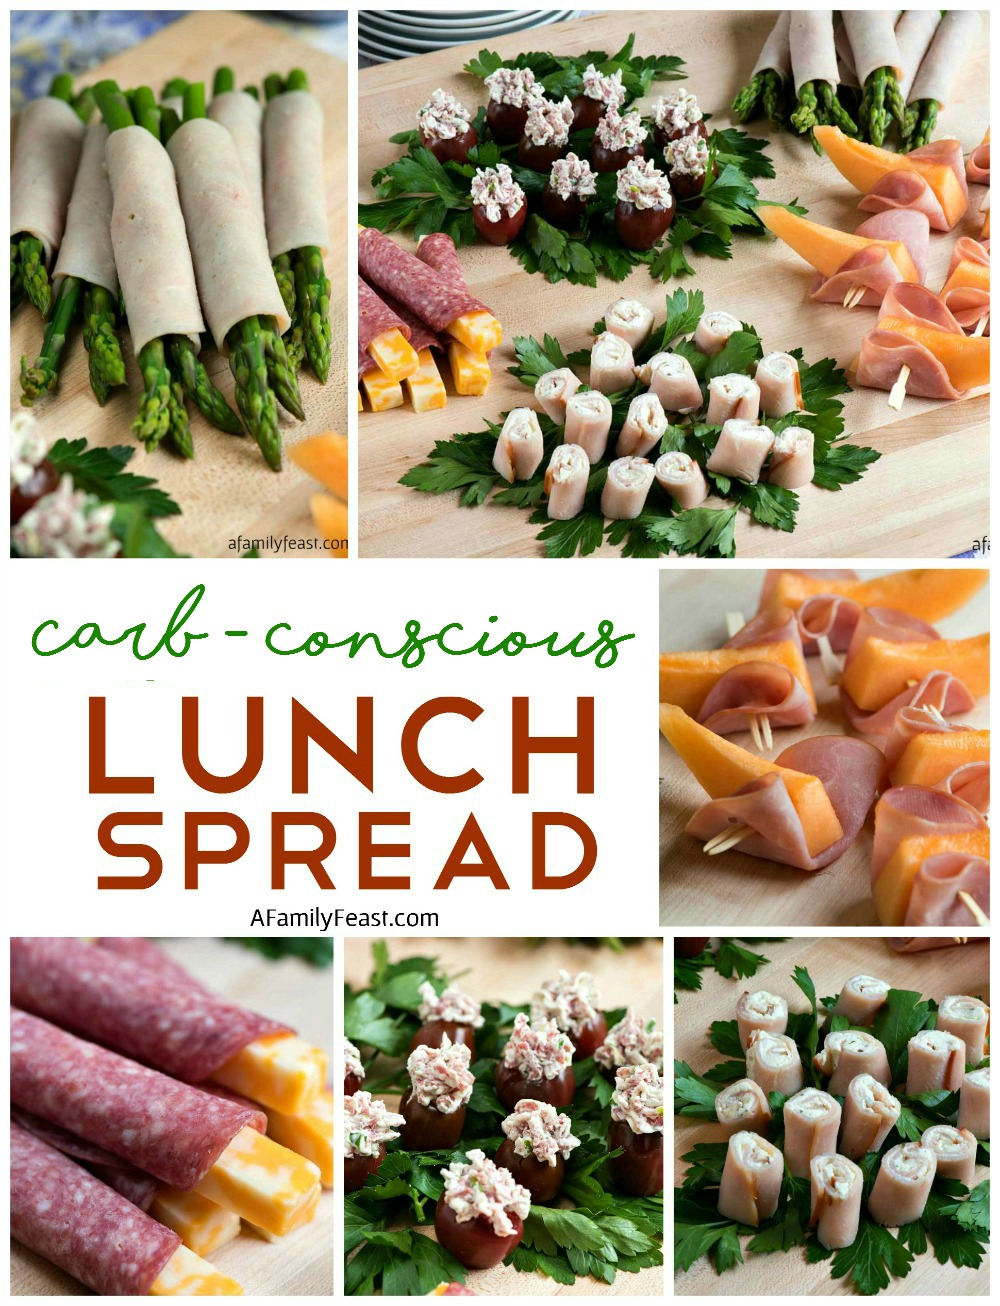 Low Carb Deli Lunch Spread - Easy, low carb nibbles perfect for lunch or a snack!